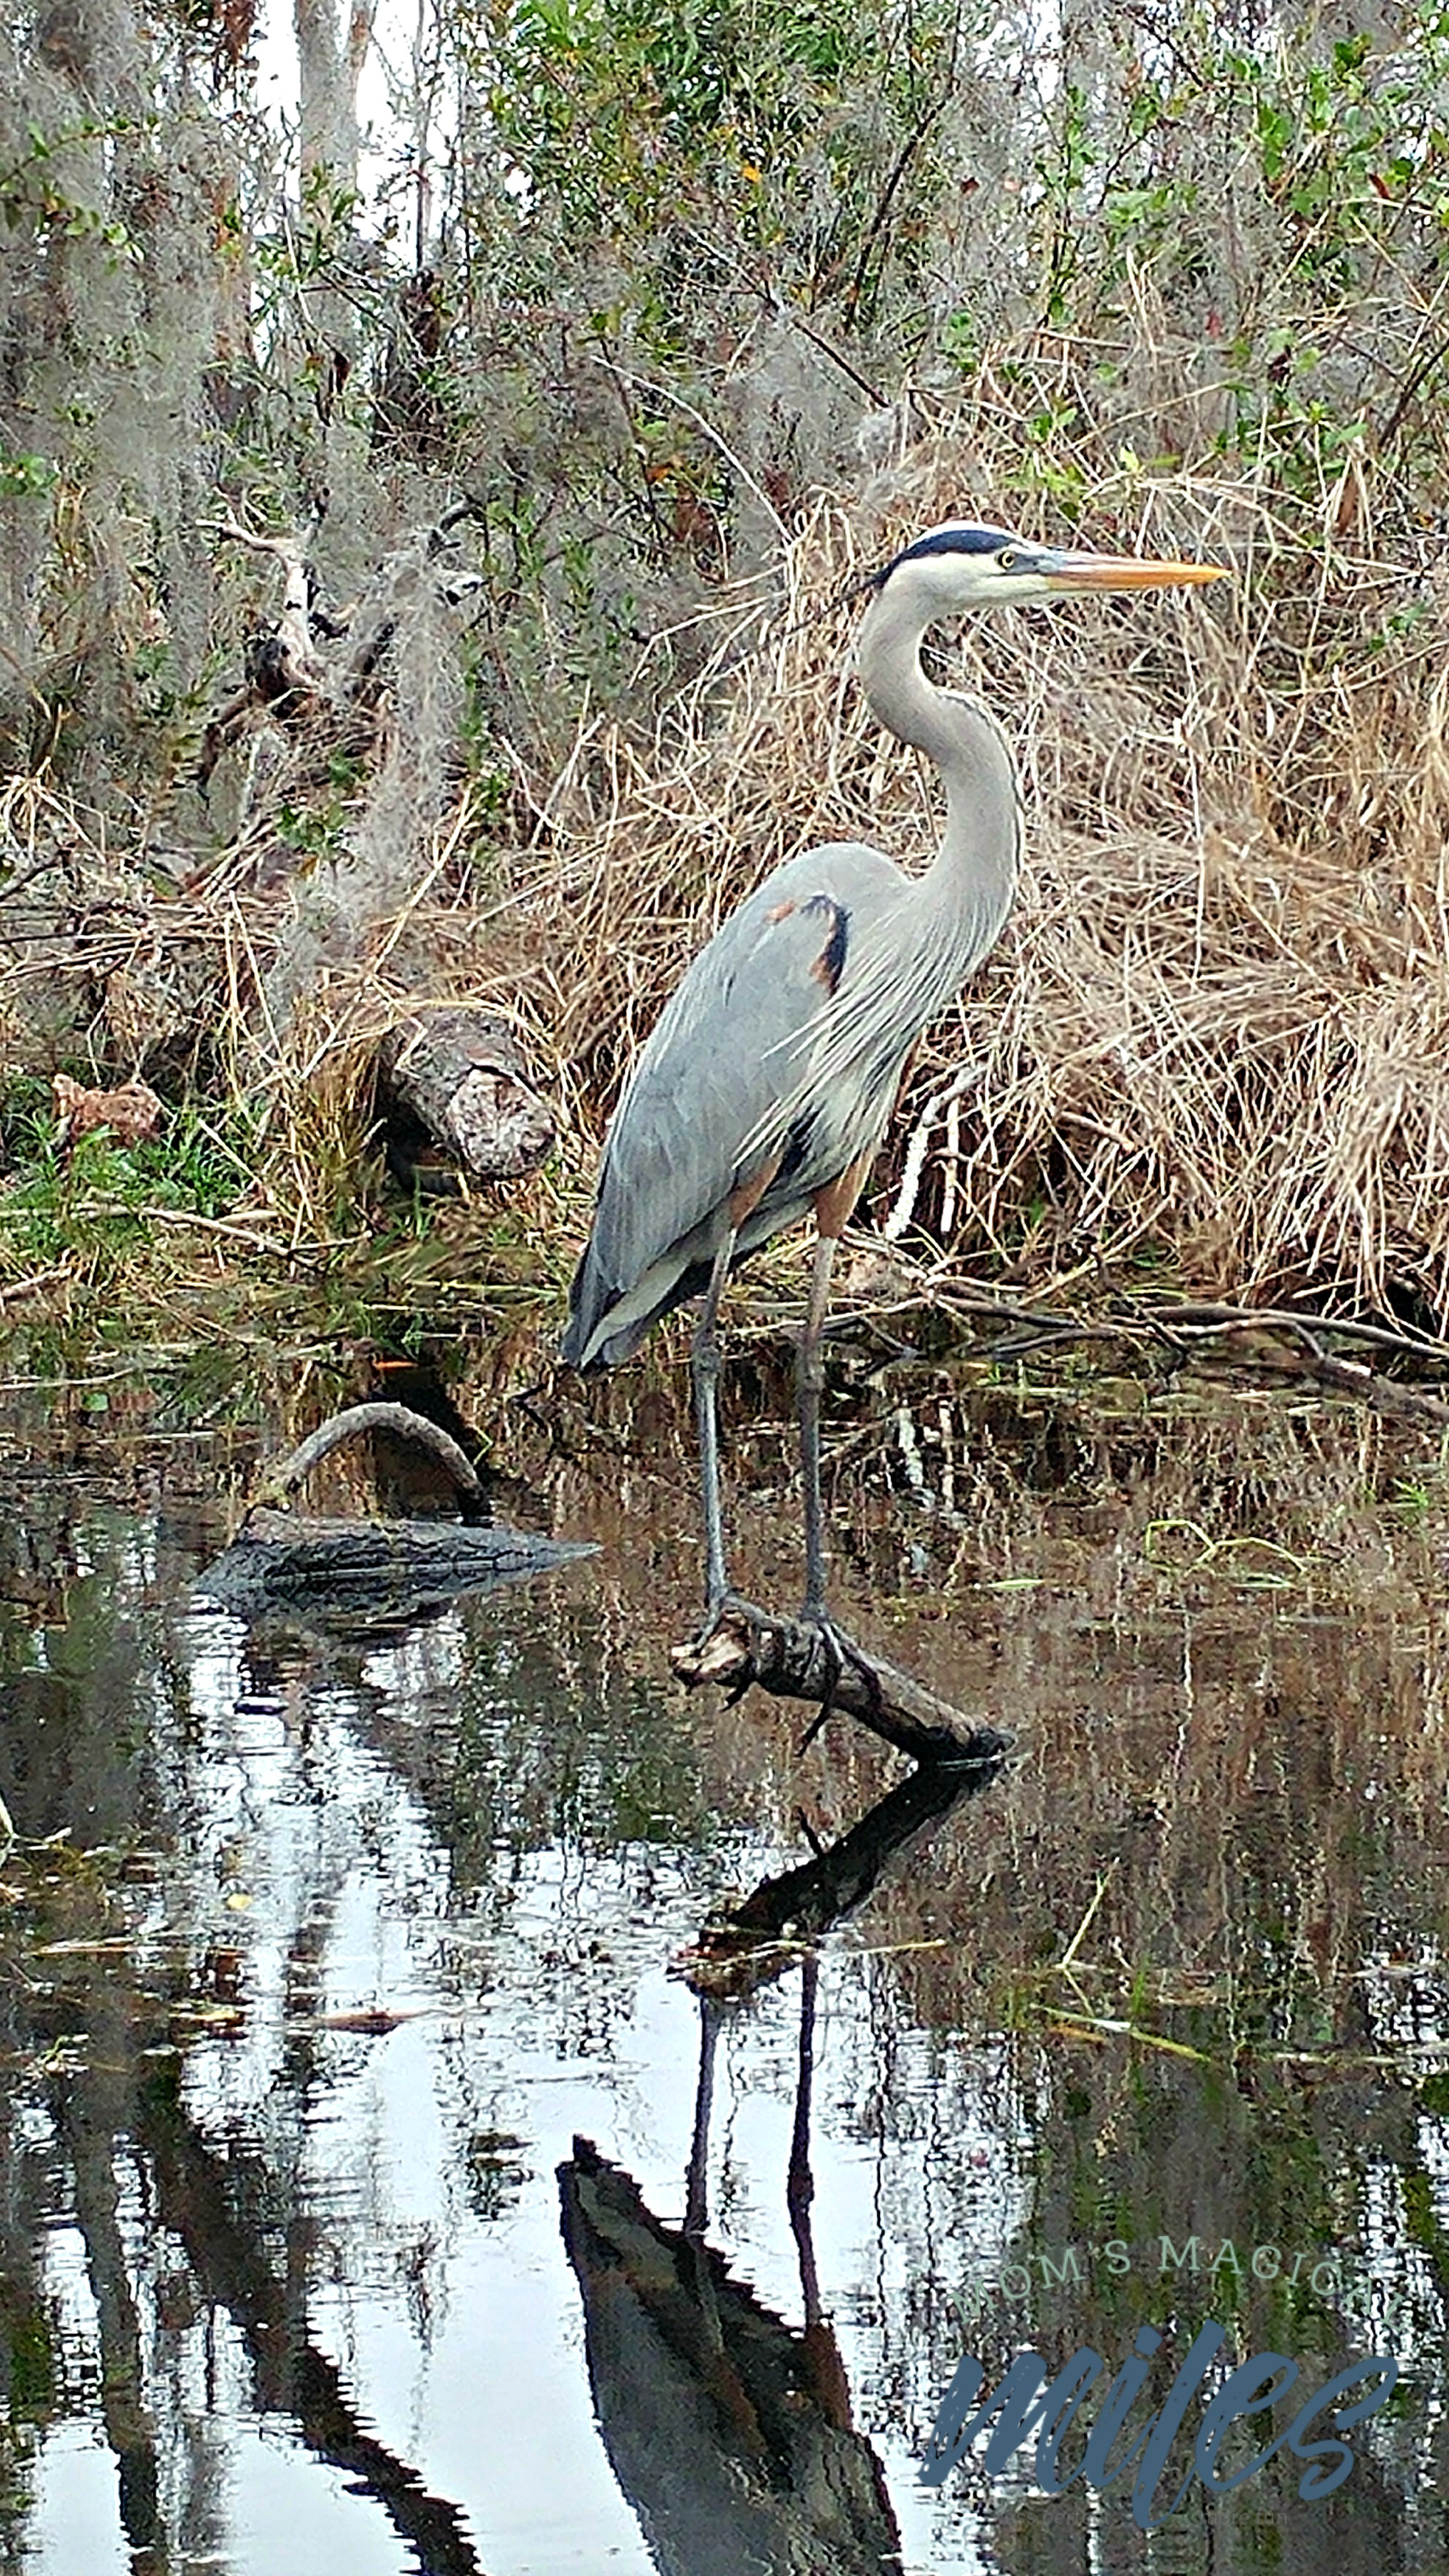 A boat tour of the Okefenokee Swamp is the best way to get close up to the animal residents!